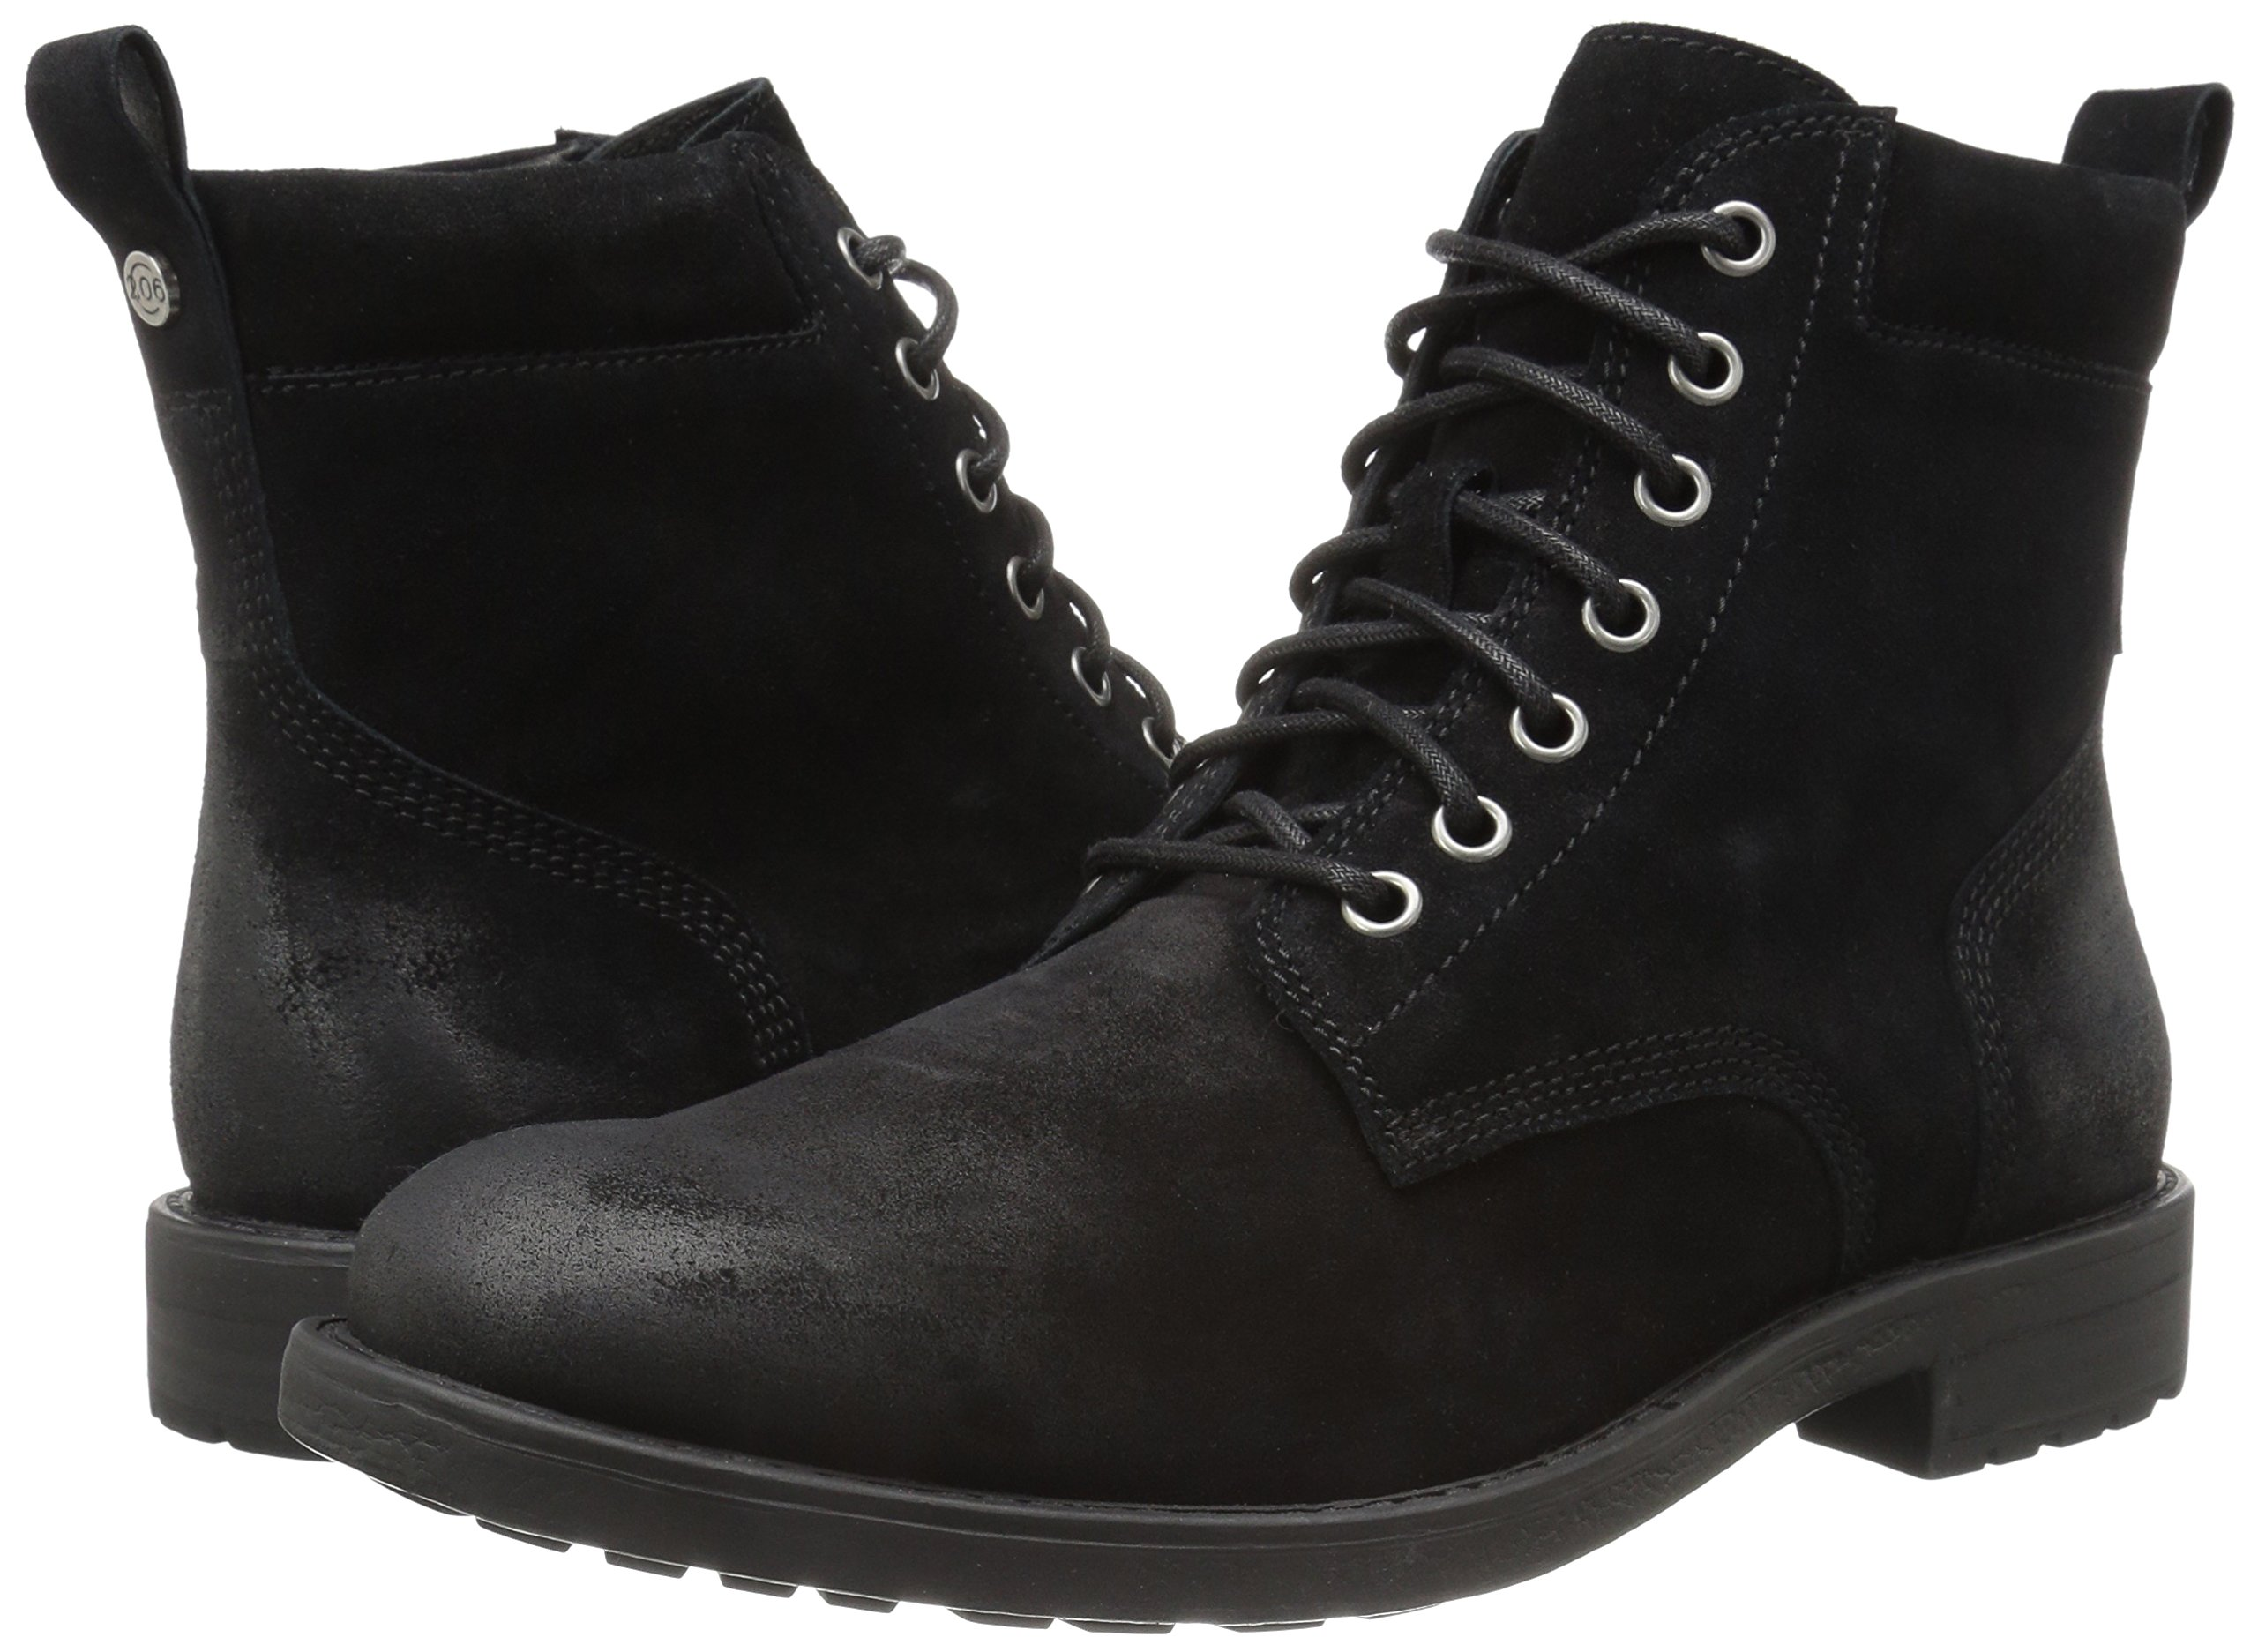 206 Collective Men's Denny Lace-up Motorcycle Boot, Black Burnish, 9.5 D US by 206 Collective (Image #6)